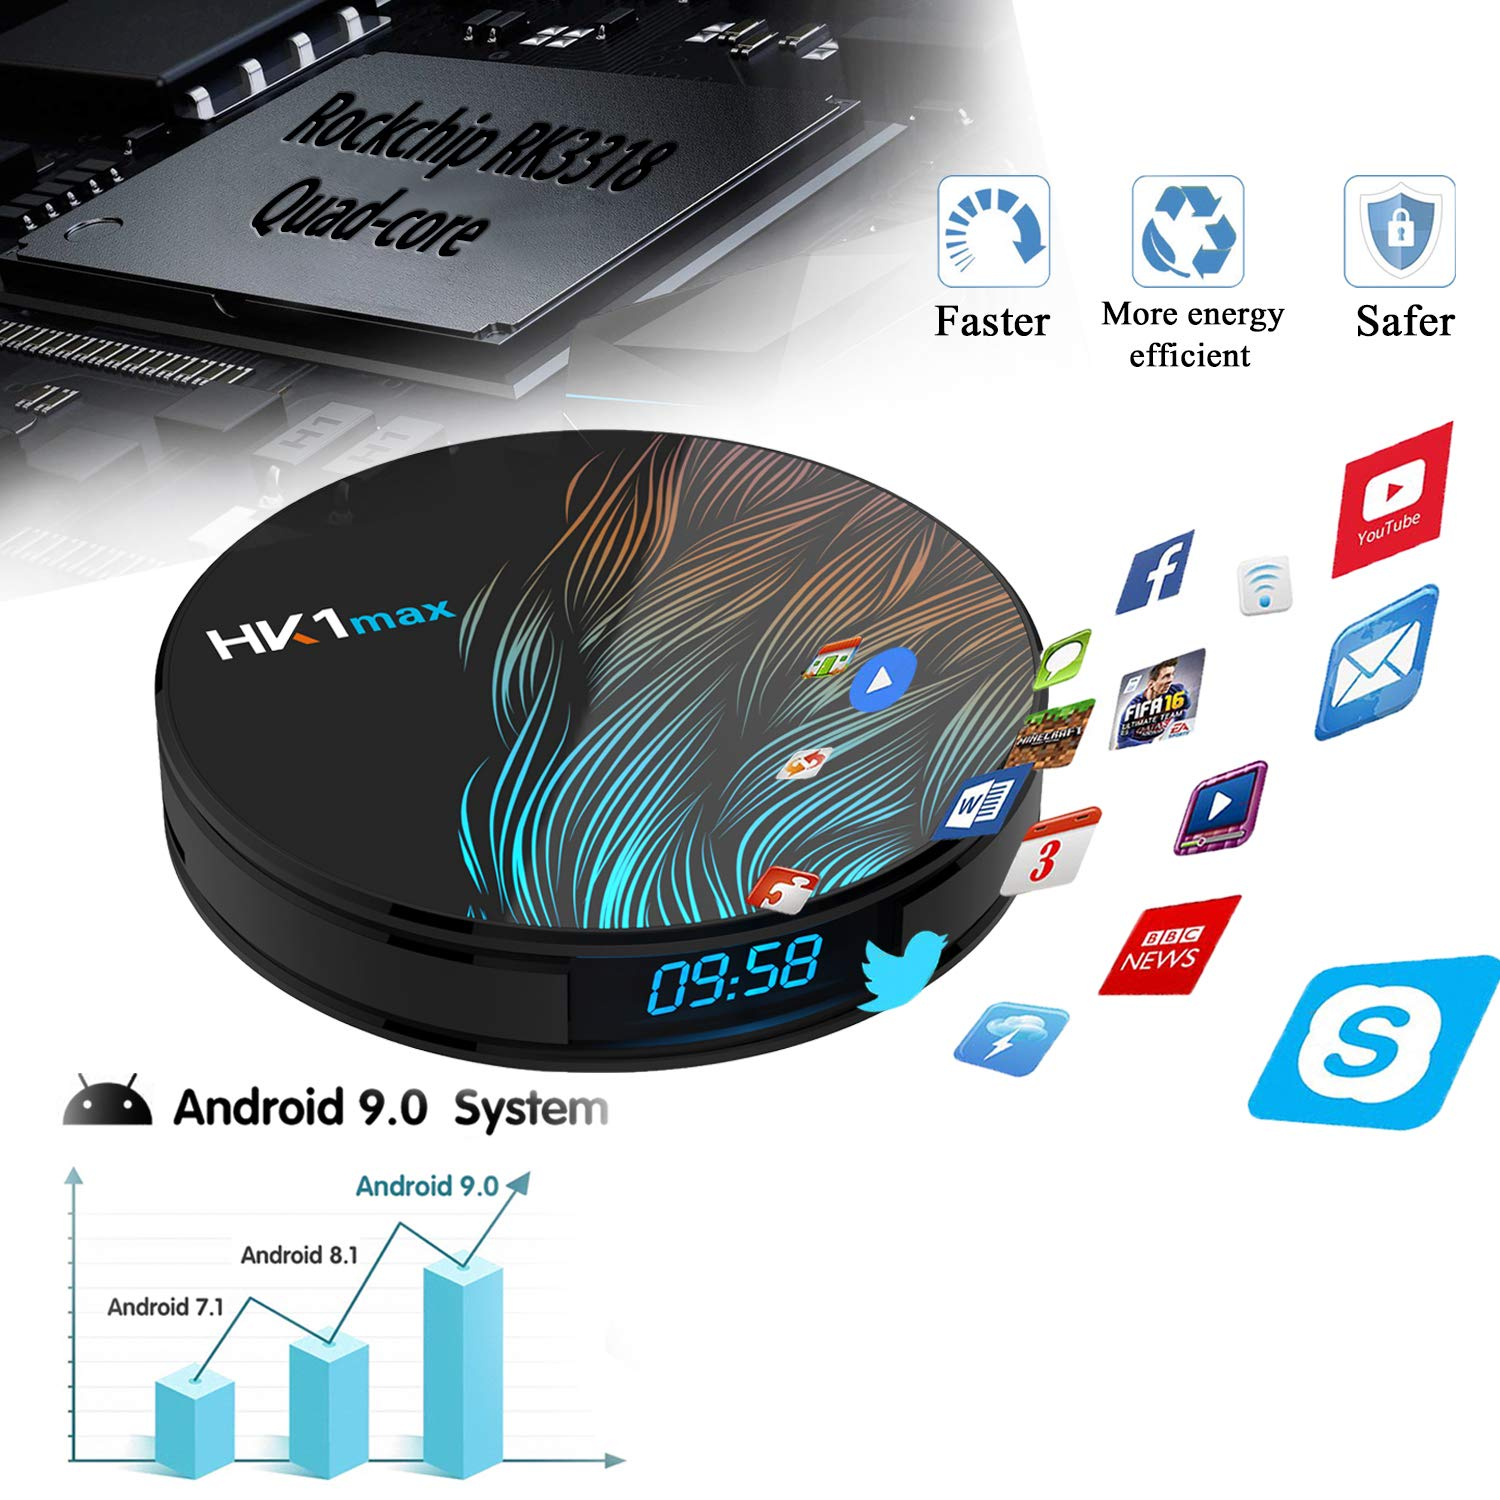 Android TV Box 9.0 4GB 64GB/Smart TV Box Streaming Media Player RK3318 USB 3.0 Ultra HD//4K//HDR Dual Band WiFi 2.4GHz//5.8GHz Bluetooth 4.1 Set Top Box with Wireless Keyboard-HK1 MAX 4G+64G